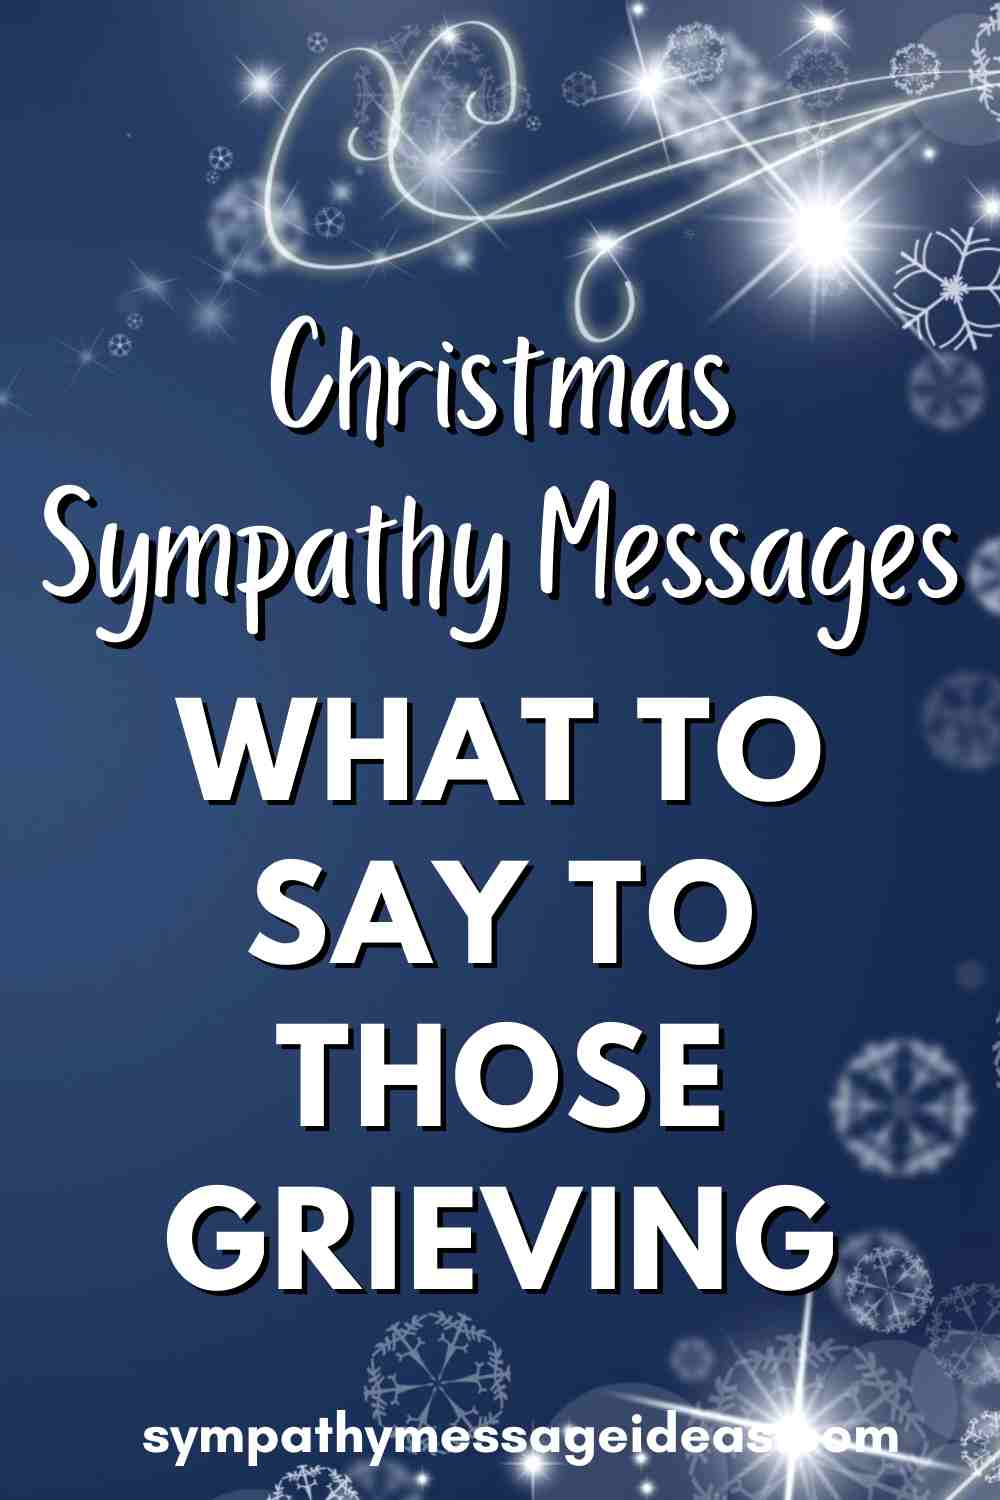 Christmas Sympathy messages